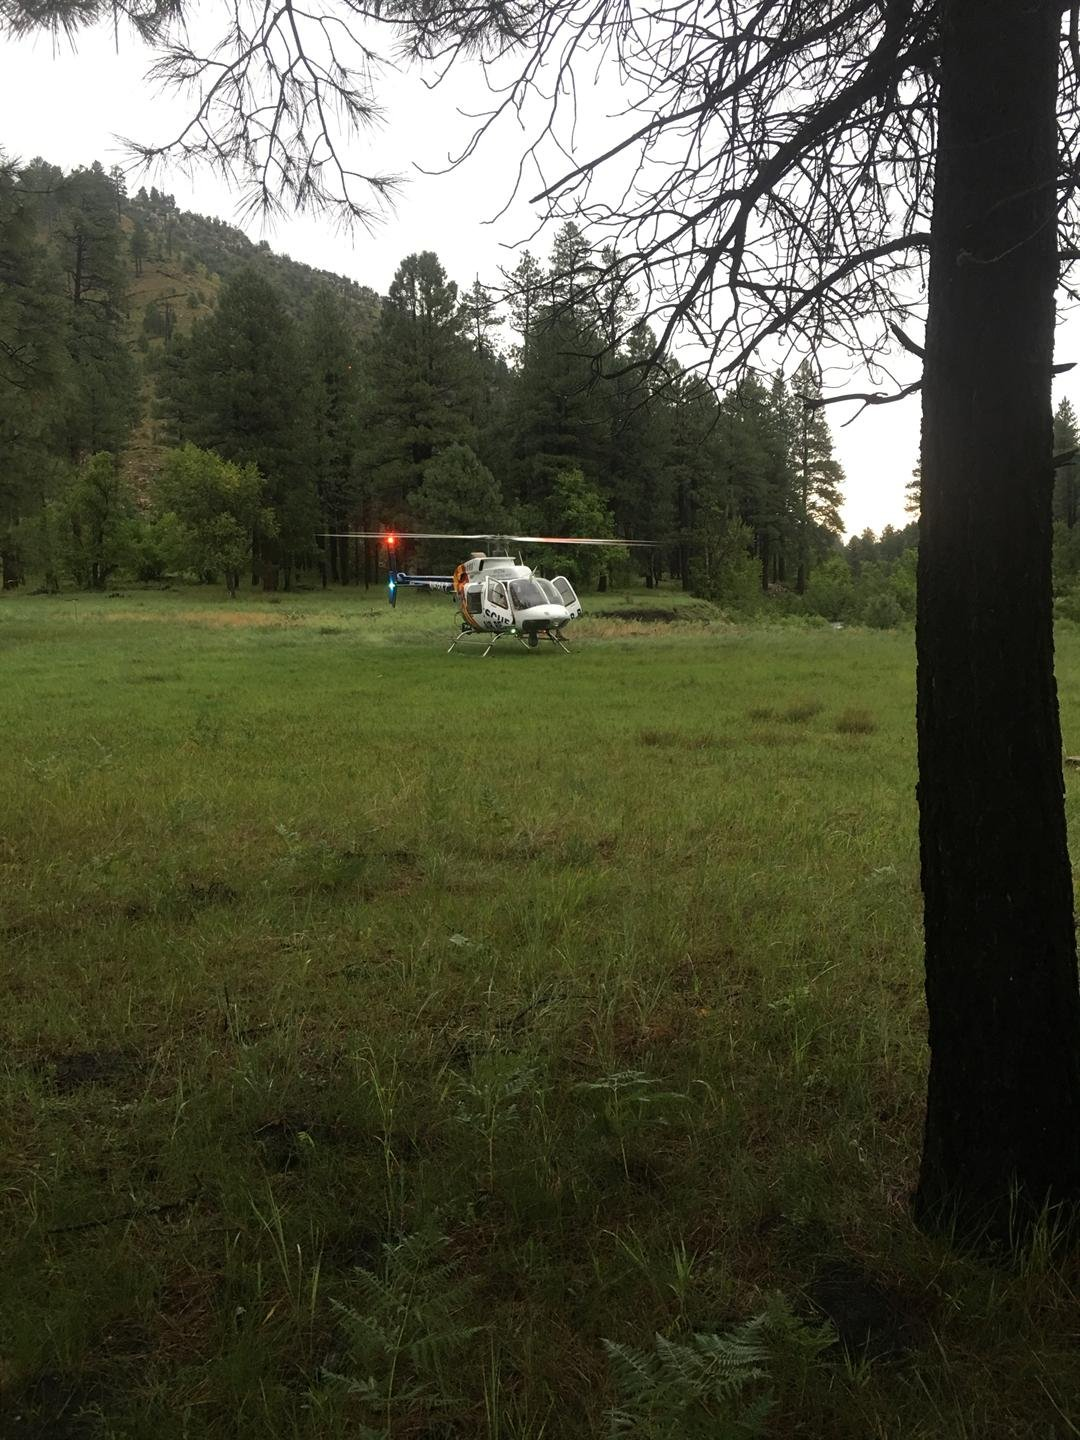 The Arizona Department of Public Safety Central Air Rescue unit retrieved the man in a nearby meadow at about 6:30 p.m. after the storms passed. (Source: Coconino County Sheriff's Office)